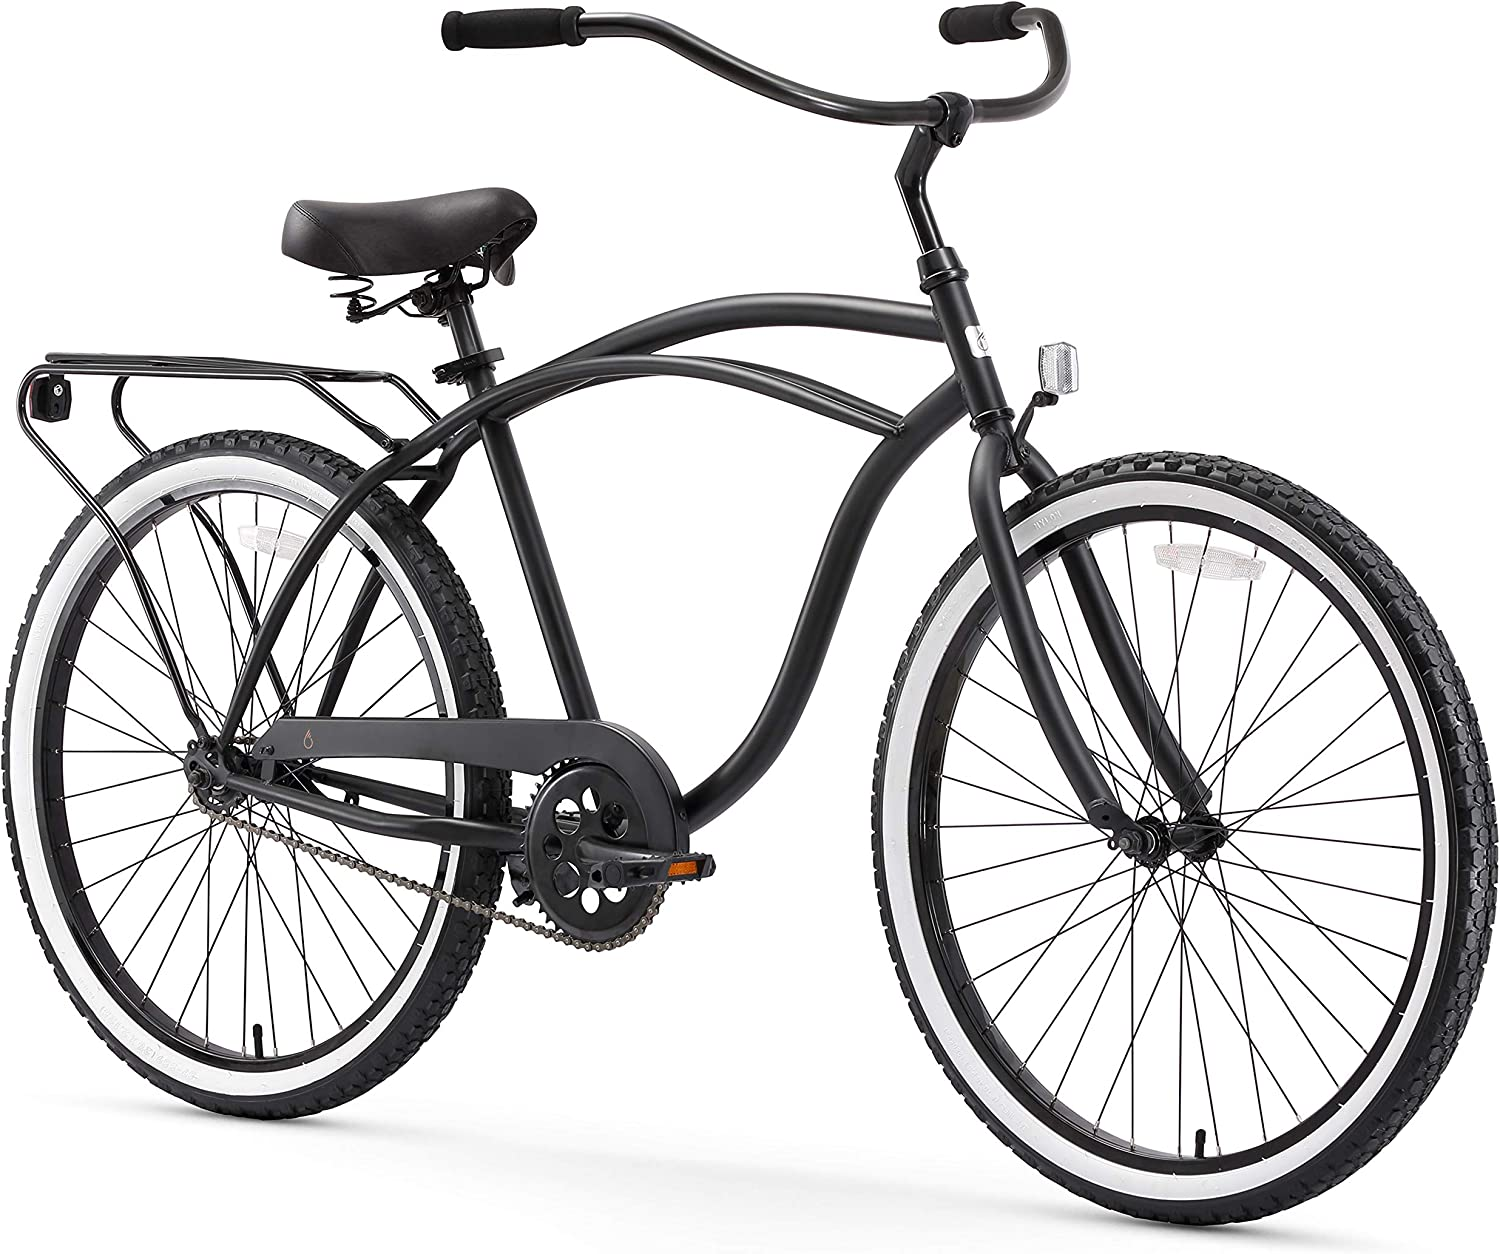 sixthreezero Around The Block Men's Single Speed Cruiser Bicycle